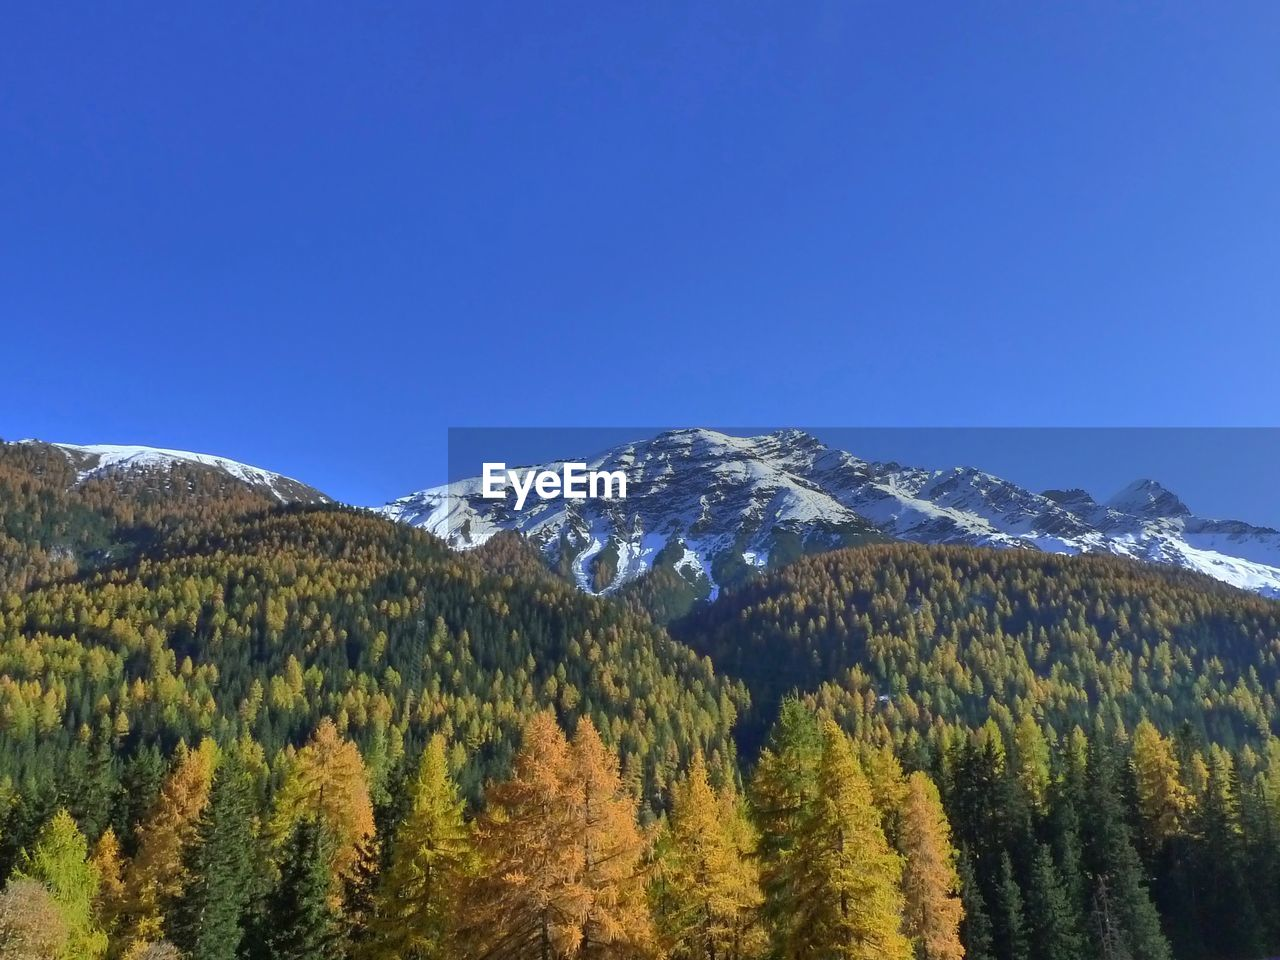 VIEW OF TREES ON MOUNTAIN